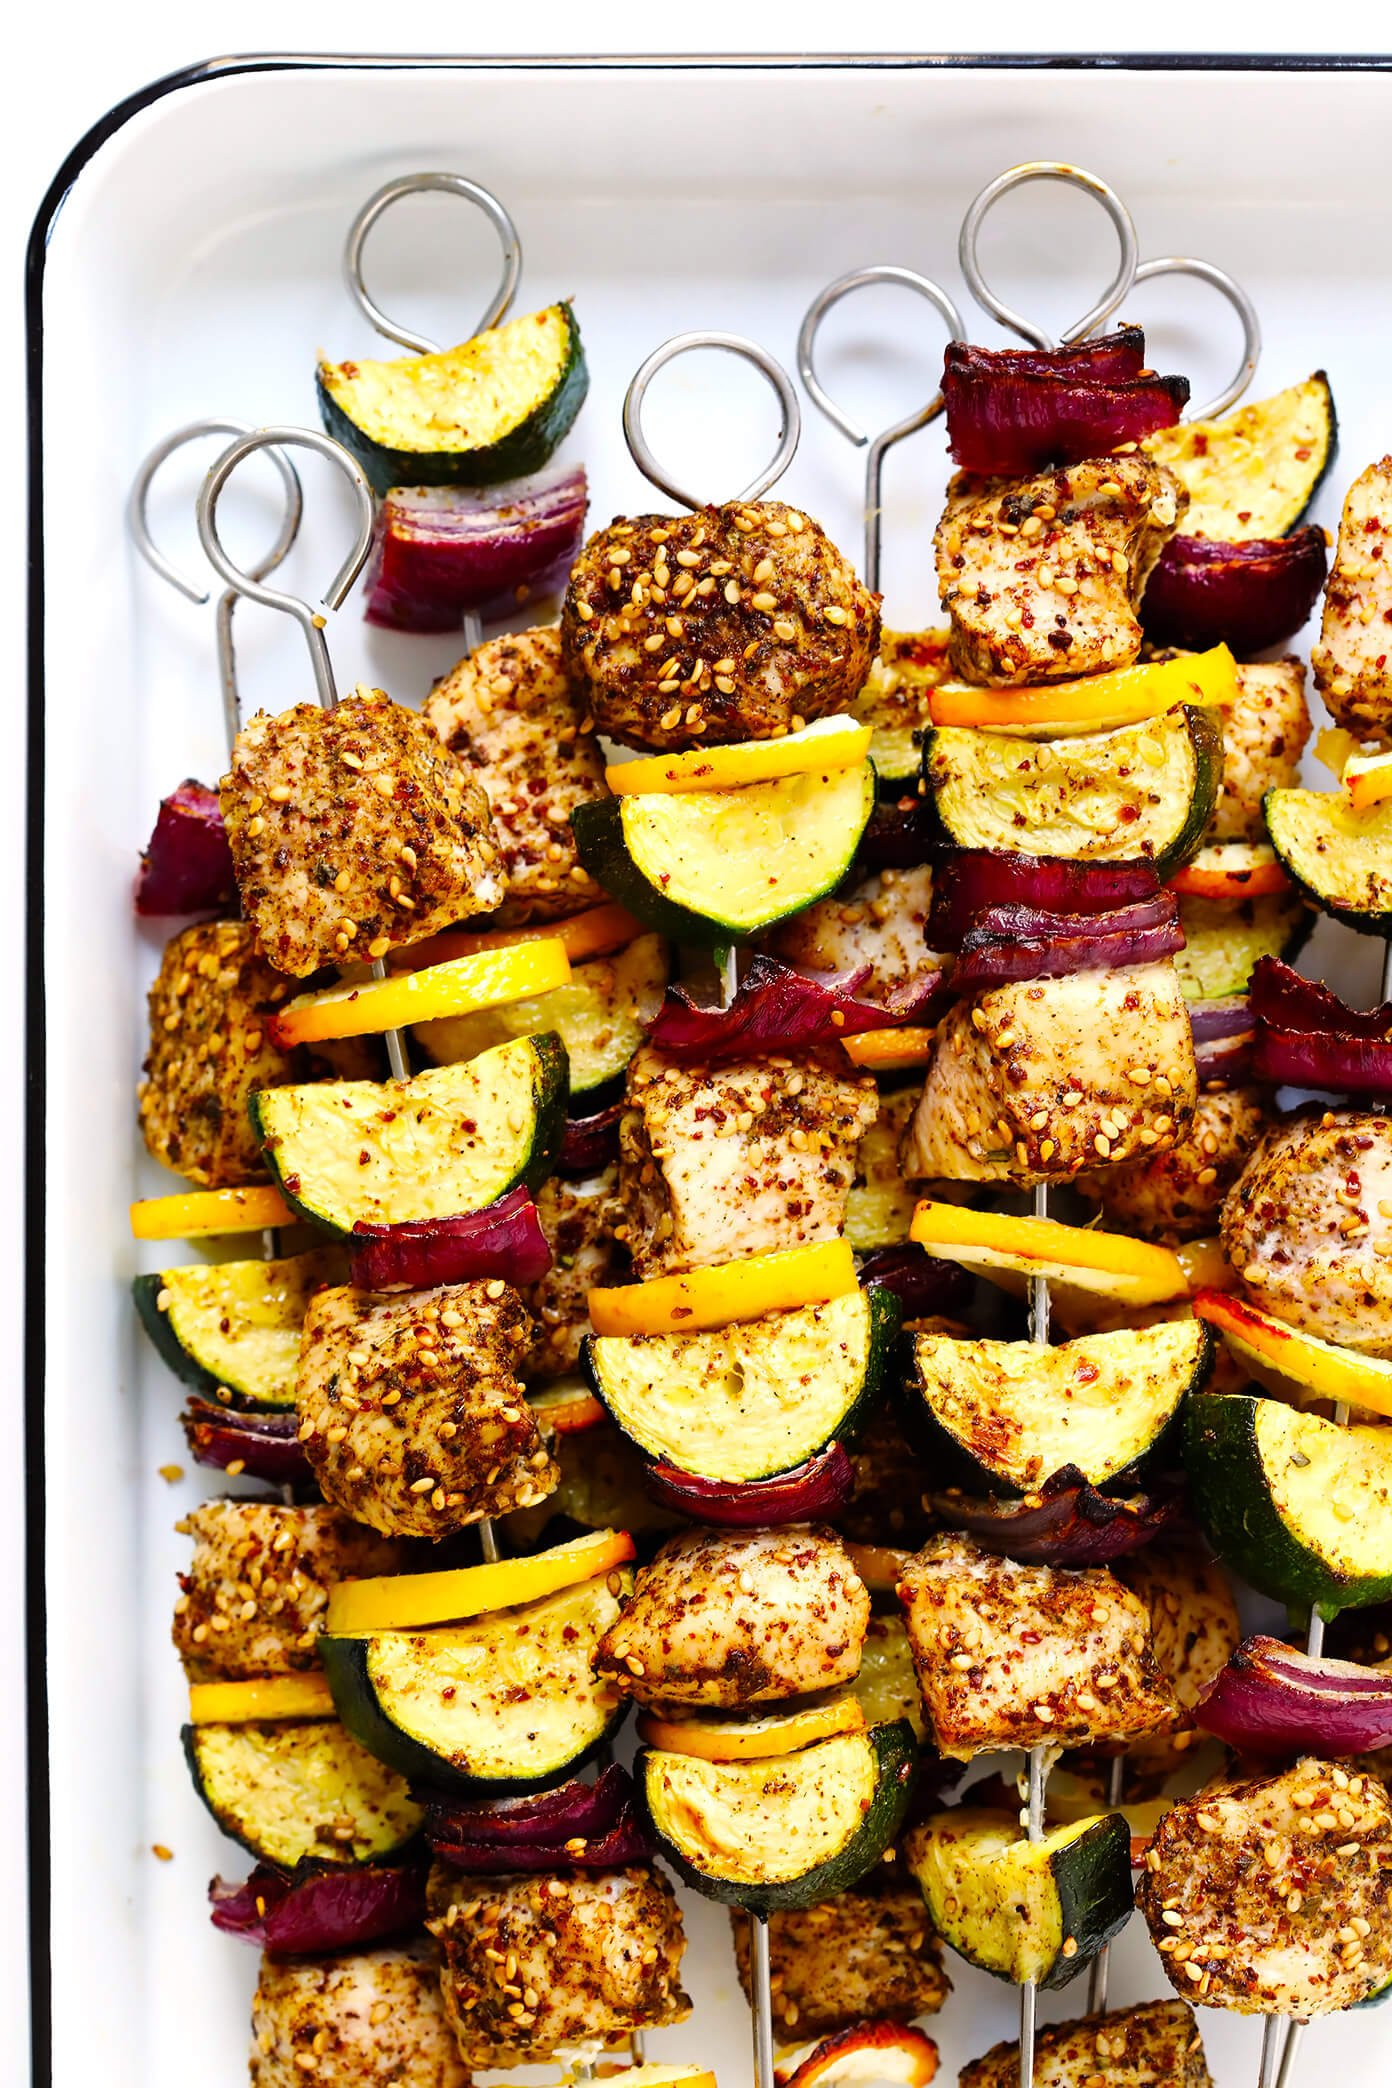 Za'atar Chicken and Vegetable Kabobs Recipe